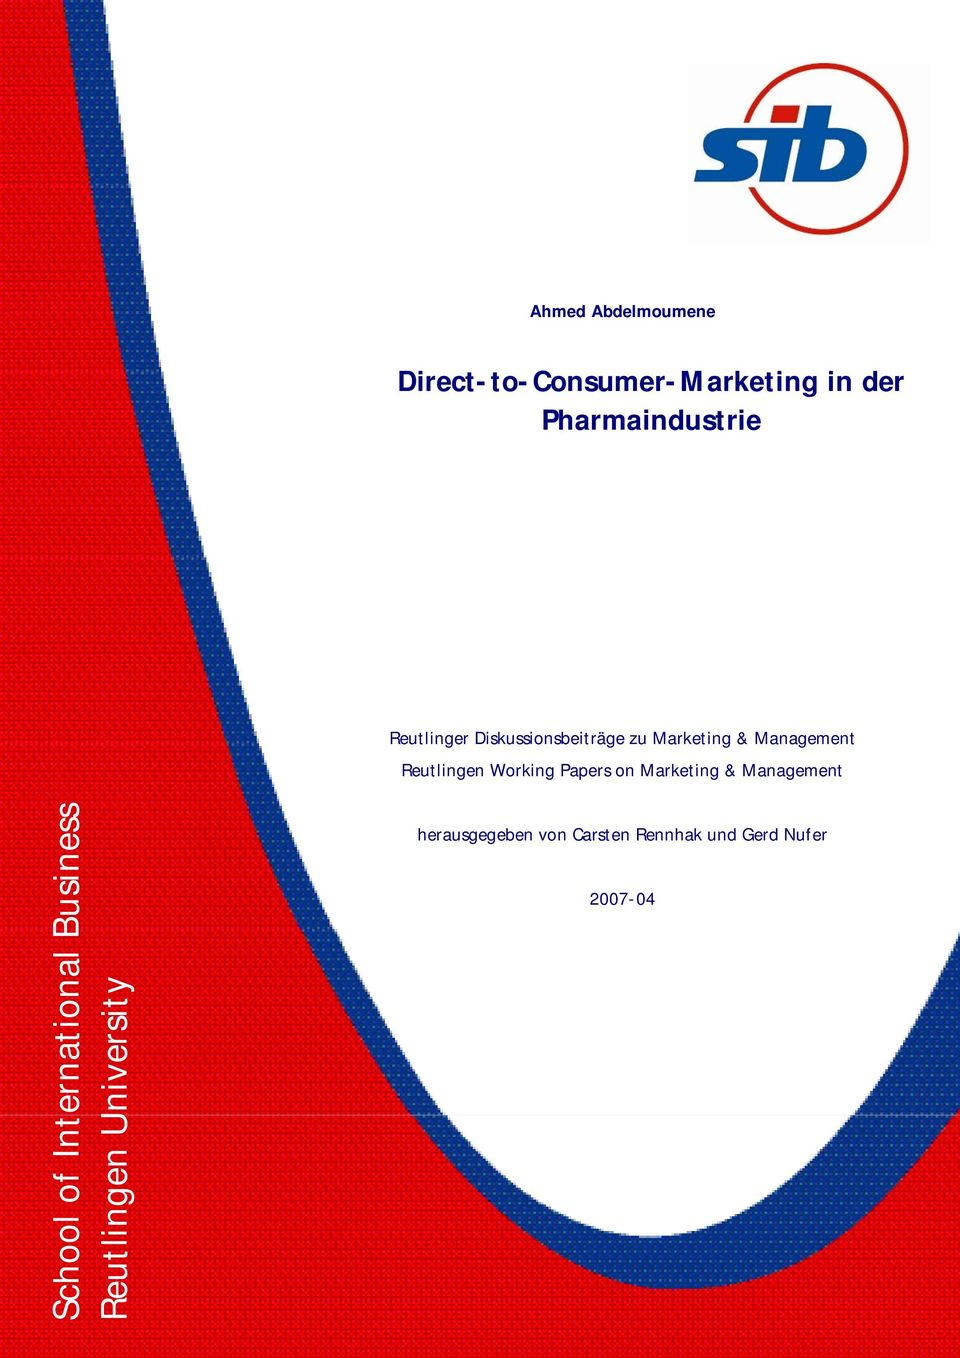 Working Papers on Marketing & Management School of International